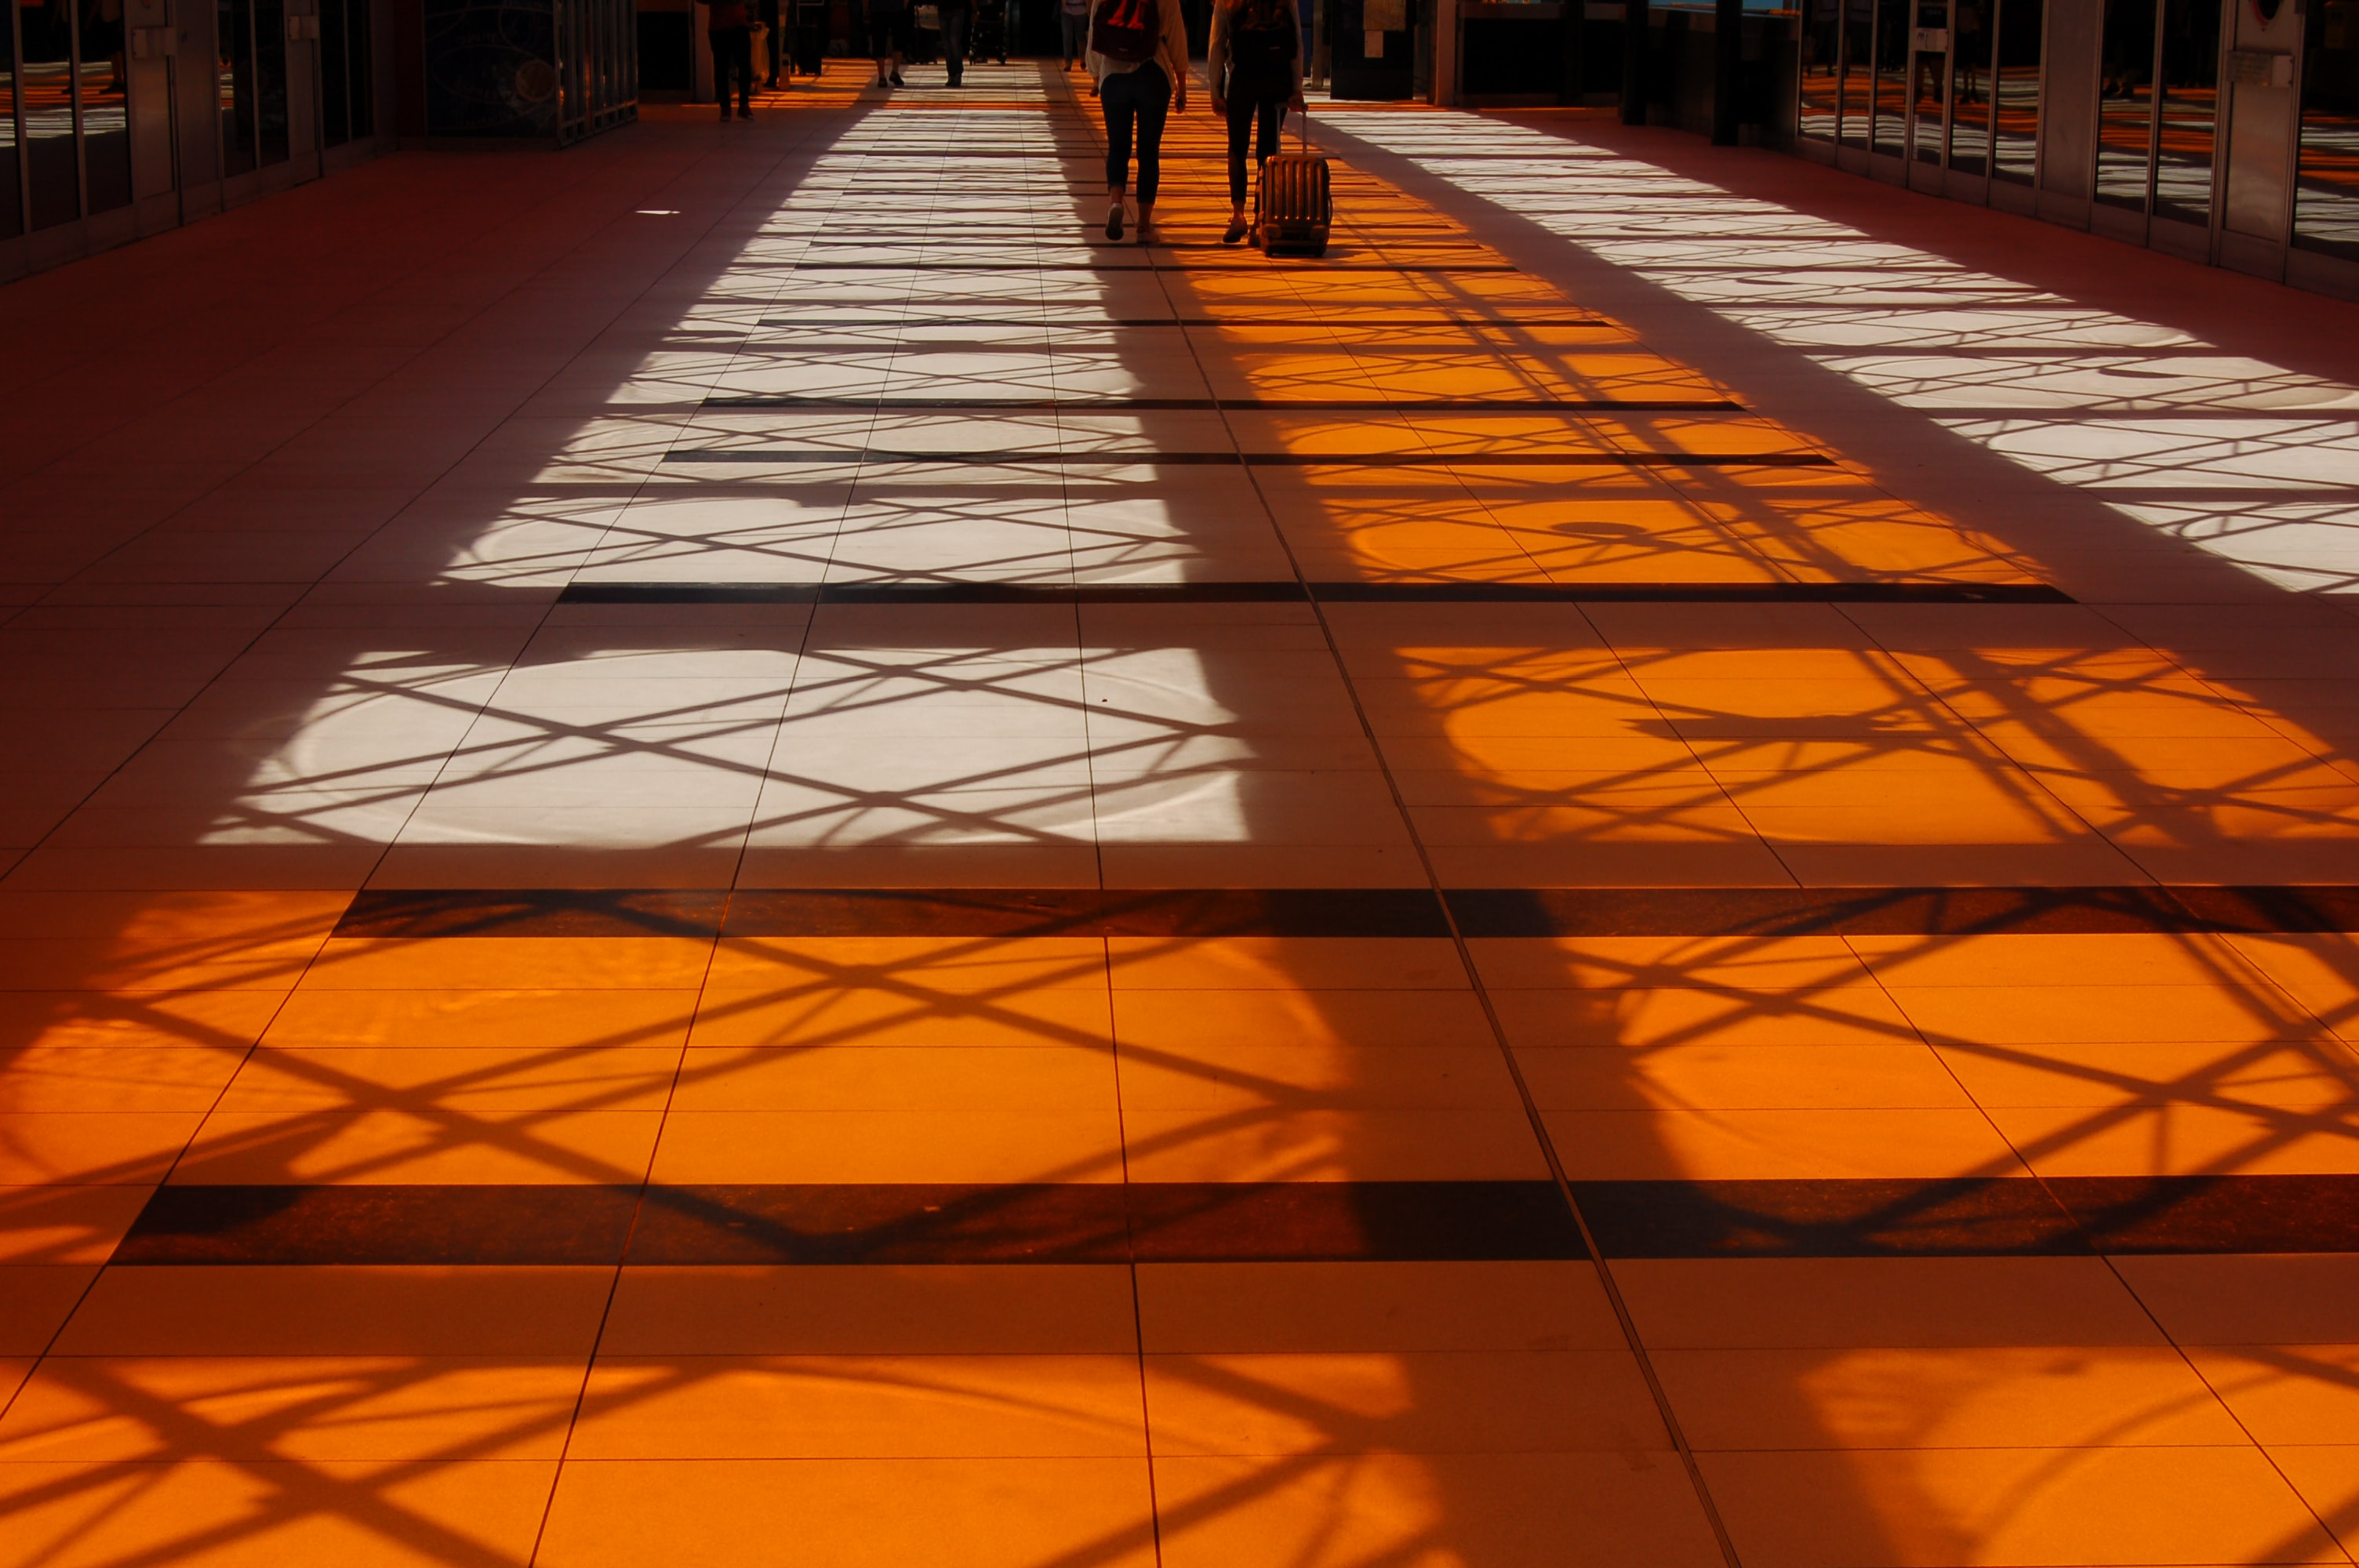 two person walking inside building with orange floor